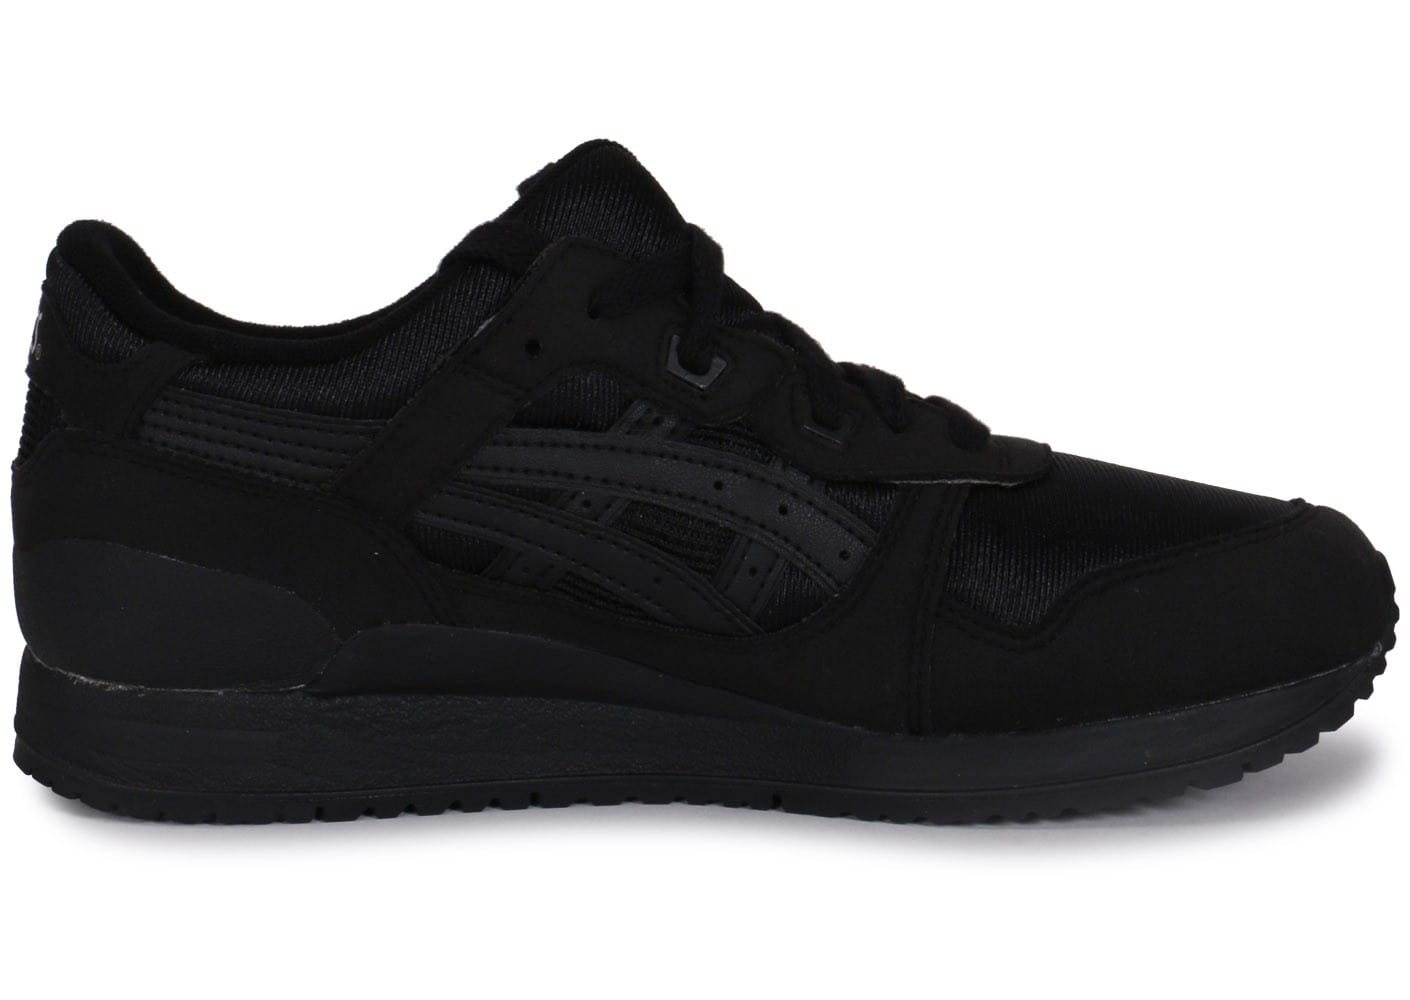 asics gel lyte 3 junior noire chaussures 50 sur le 2e article chausport. Black Bedroom Furniture Sets. Home Design Ideas